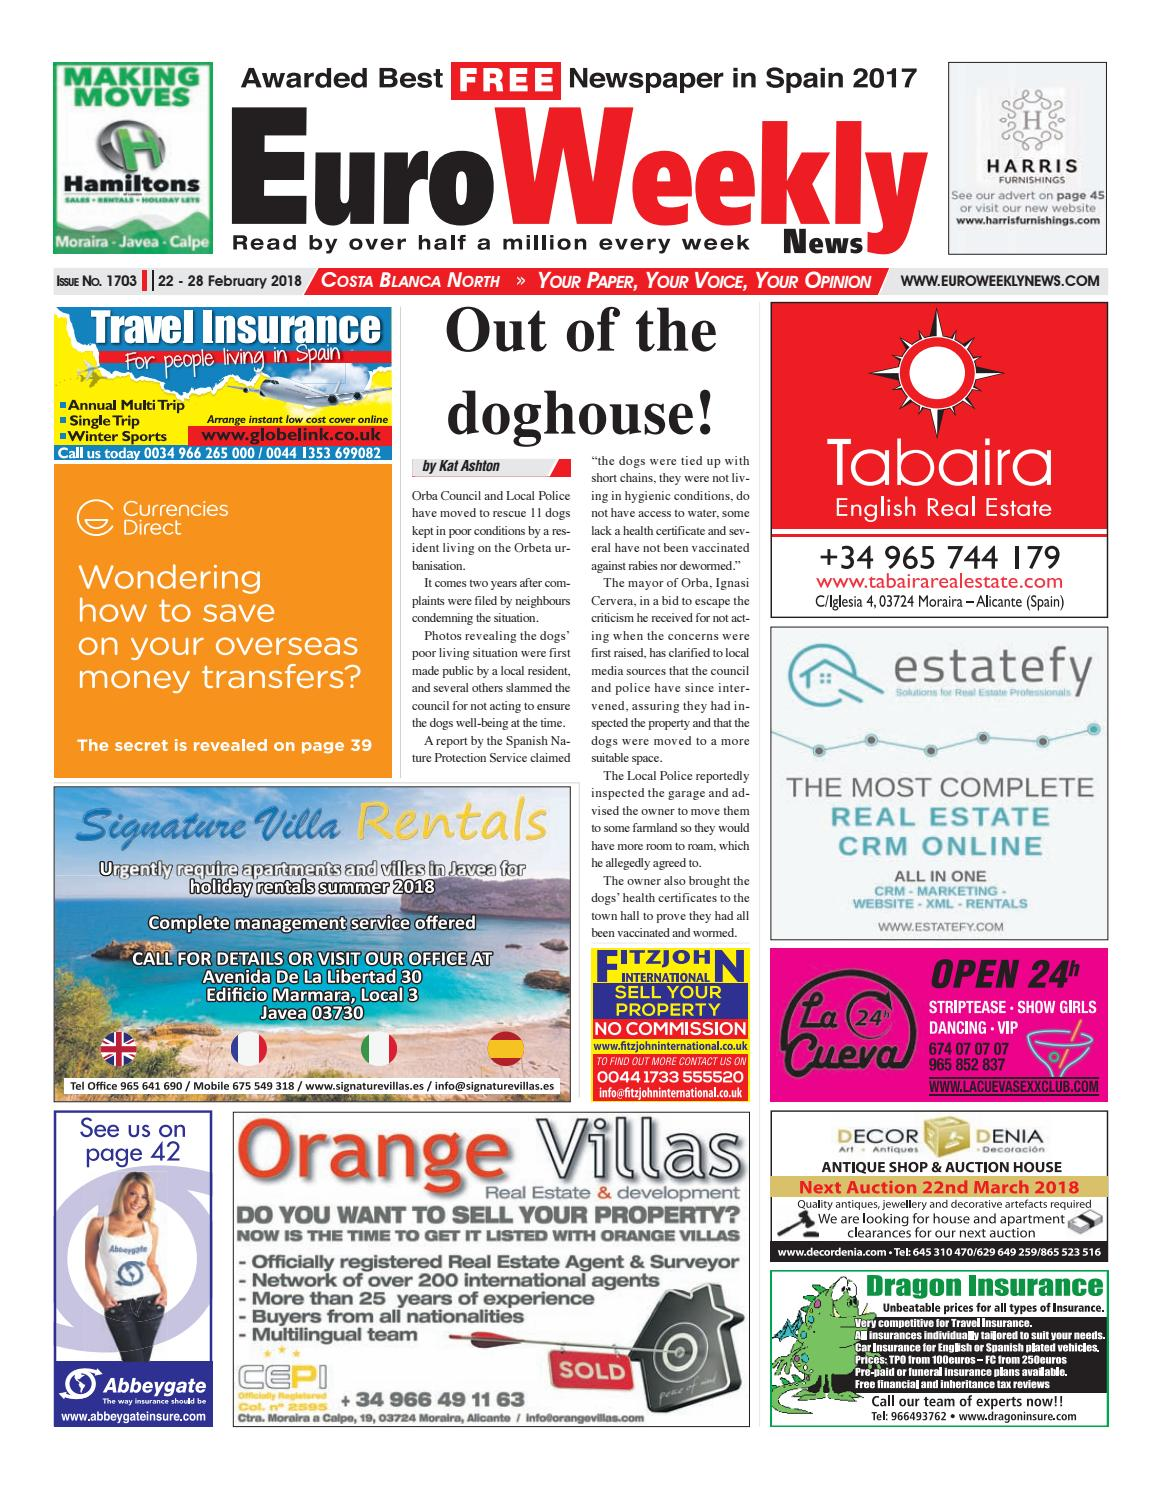 bb97352ec2f90 Euro Weekly News - Costa Blanca North 22 - 28 February 2018 Issue 1703 by  Euro Weekly News Media S.A. - issuu